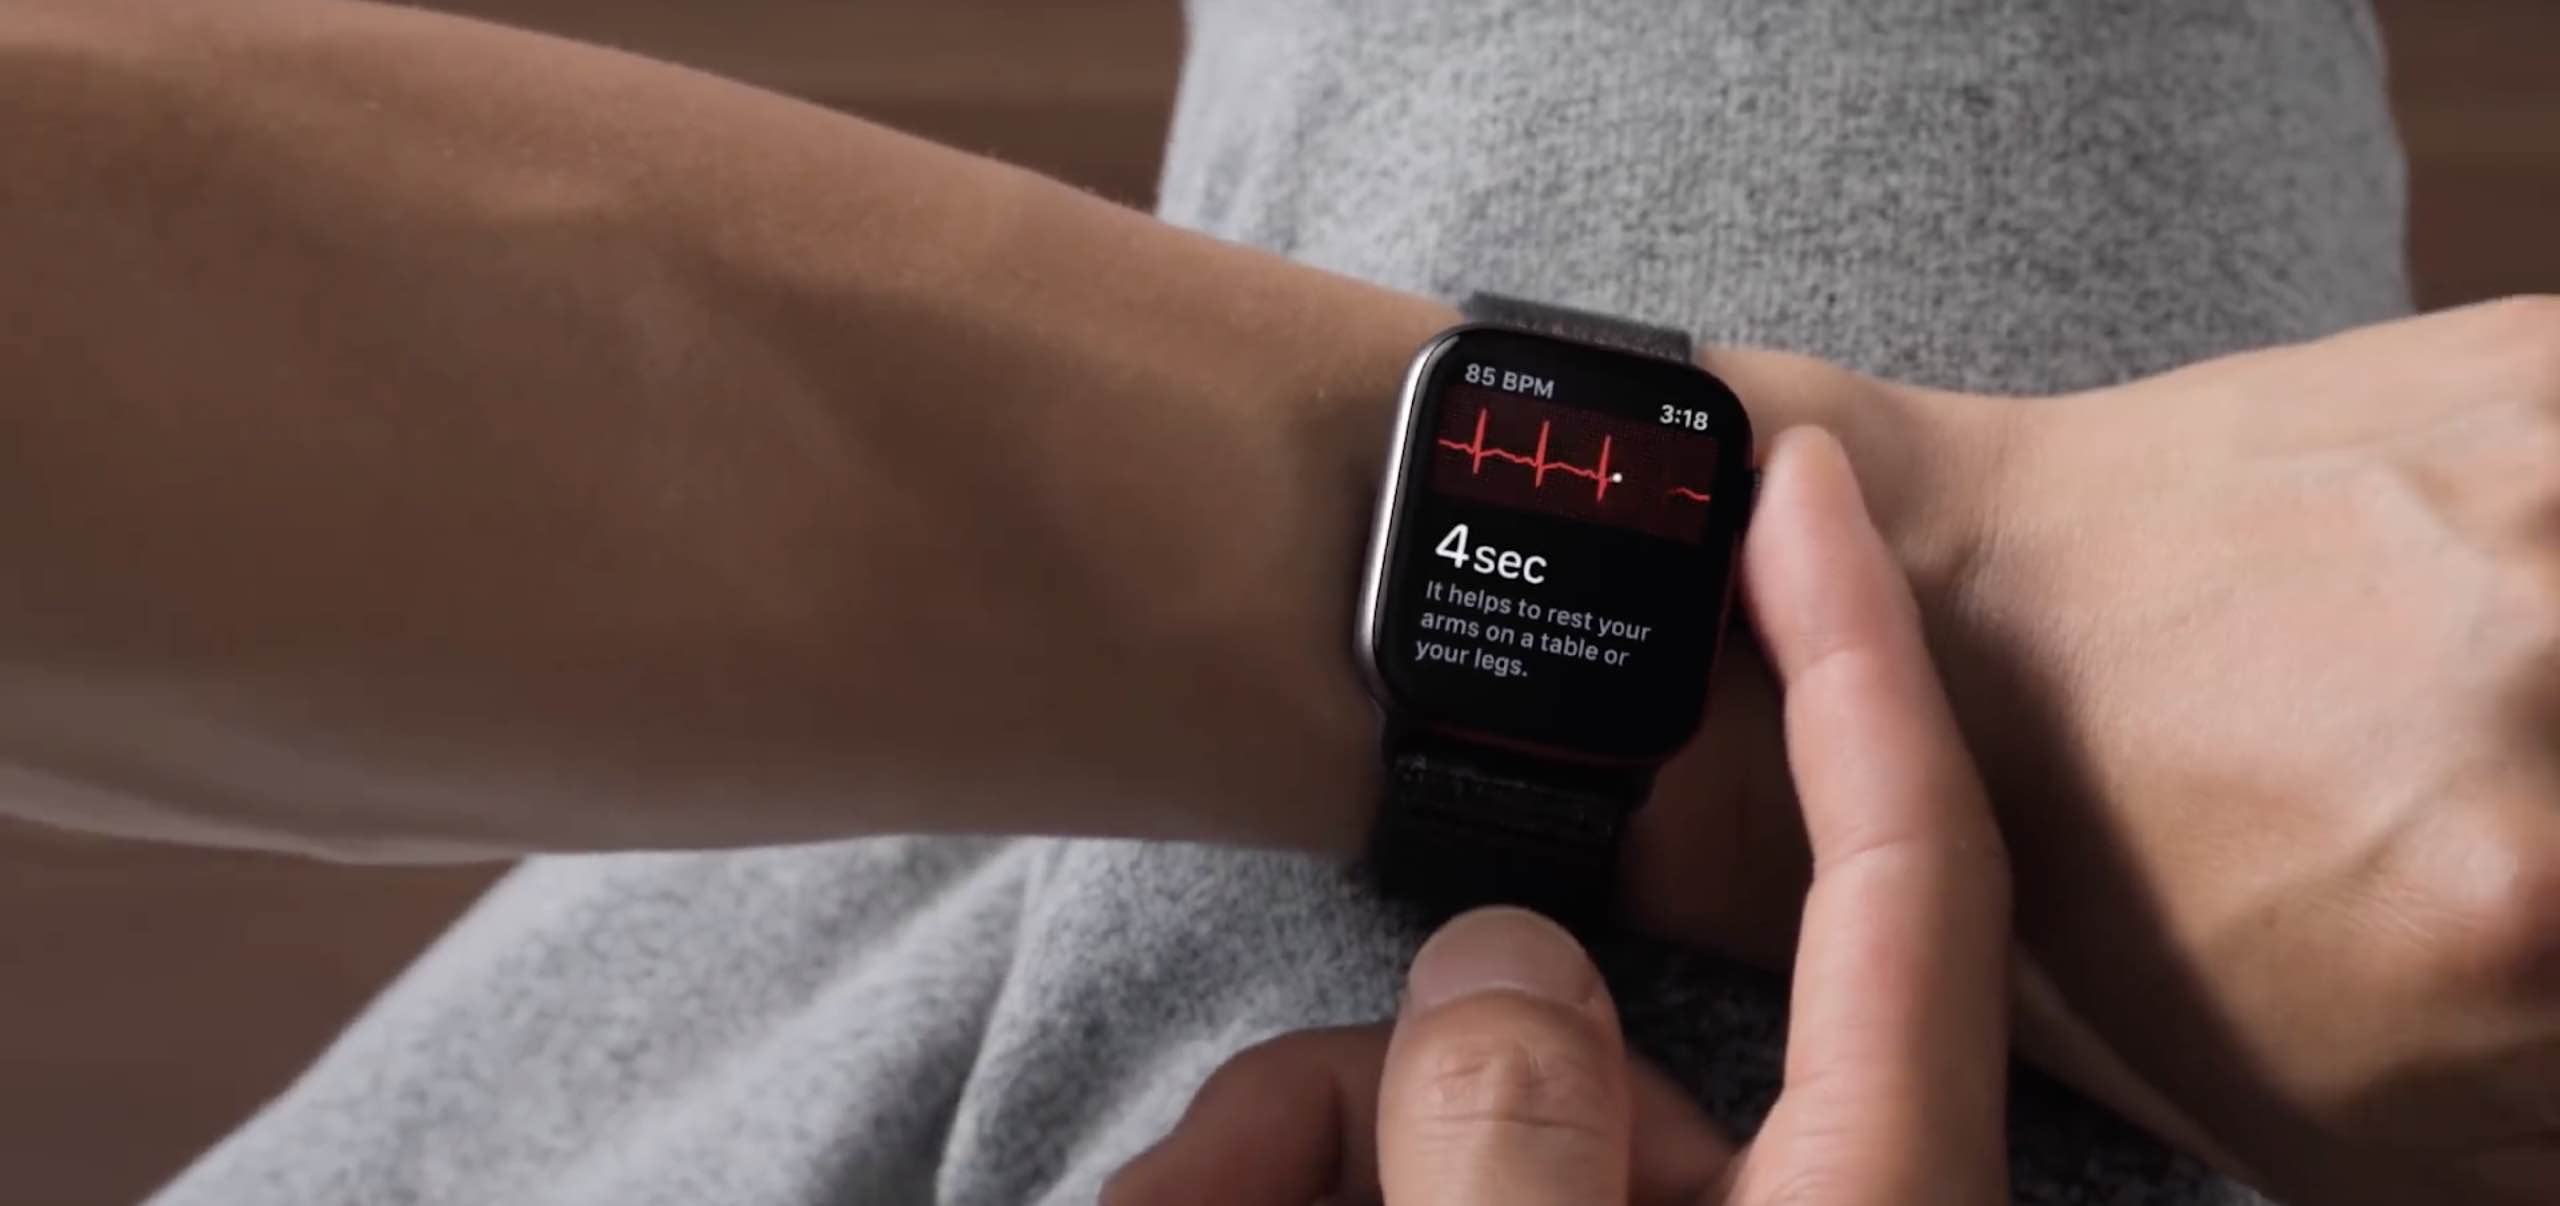 Apple Watch ECG functionality is coming later this year via a software update